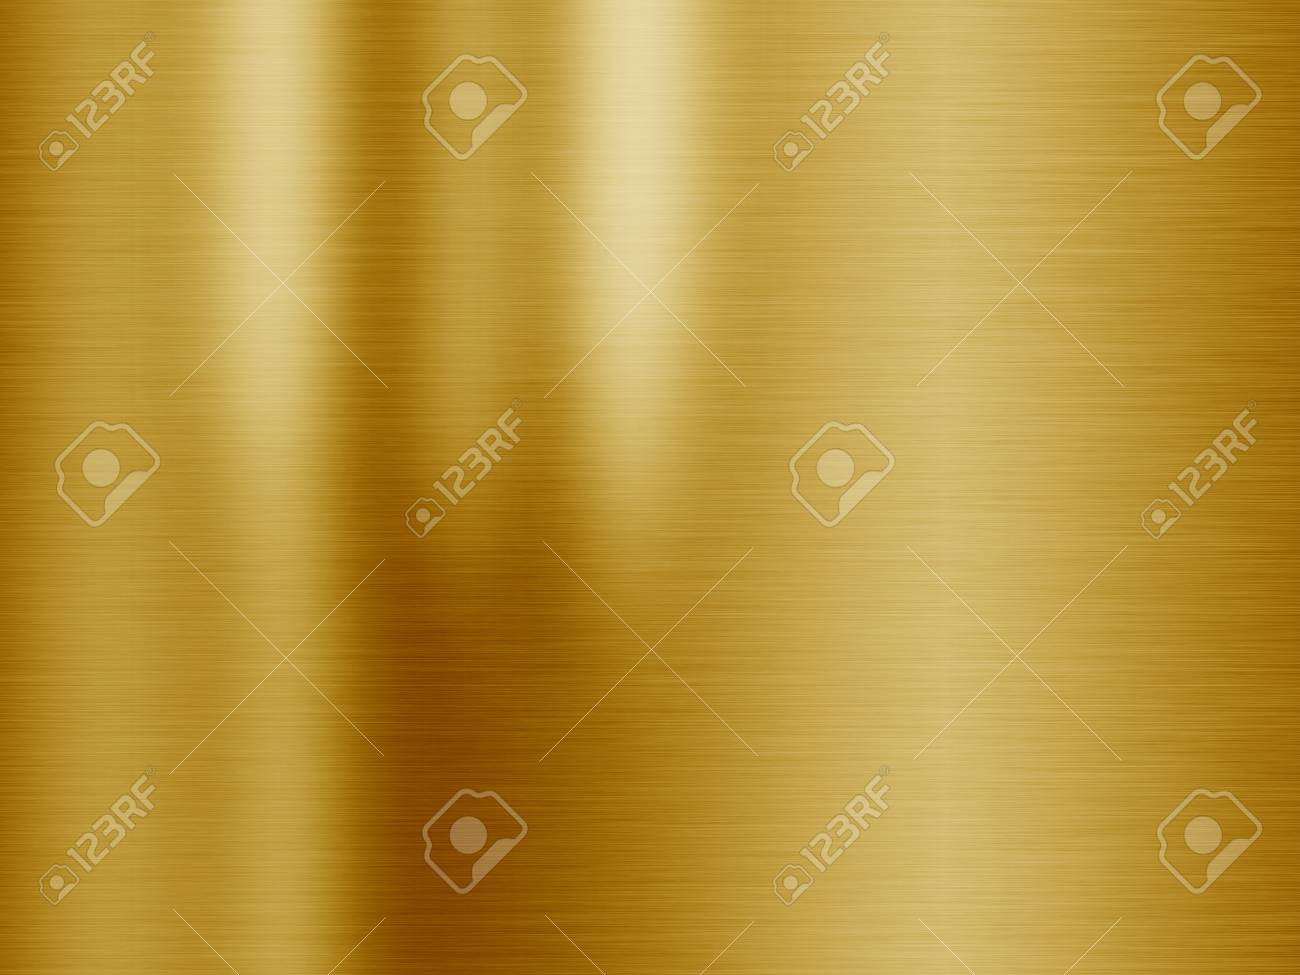 Stainless steel texture or metal texture background Banque d'images - 75076718